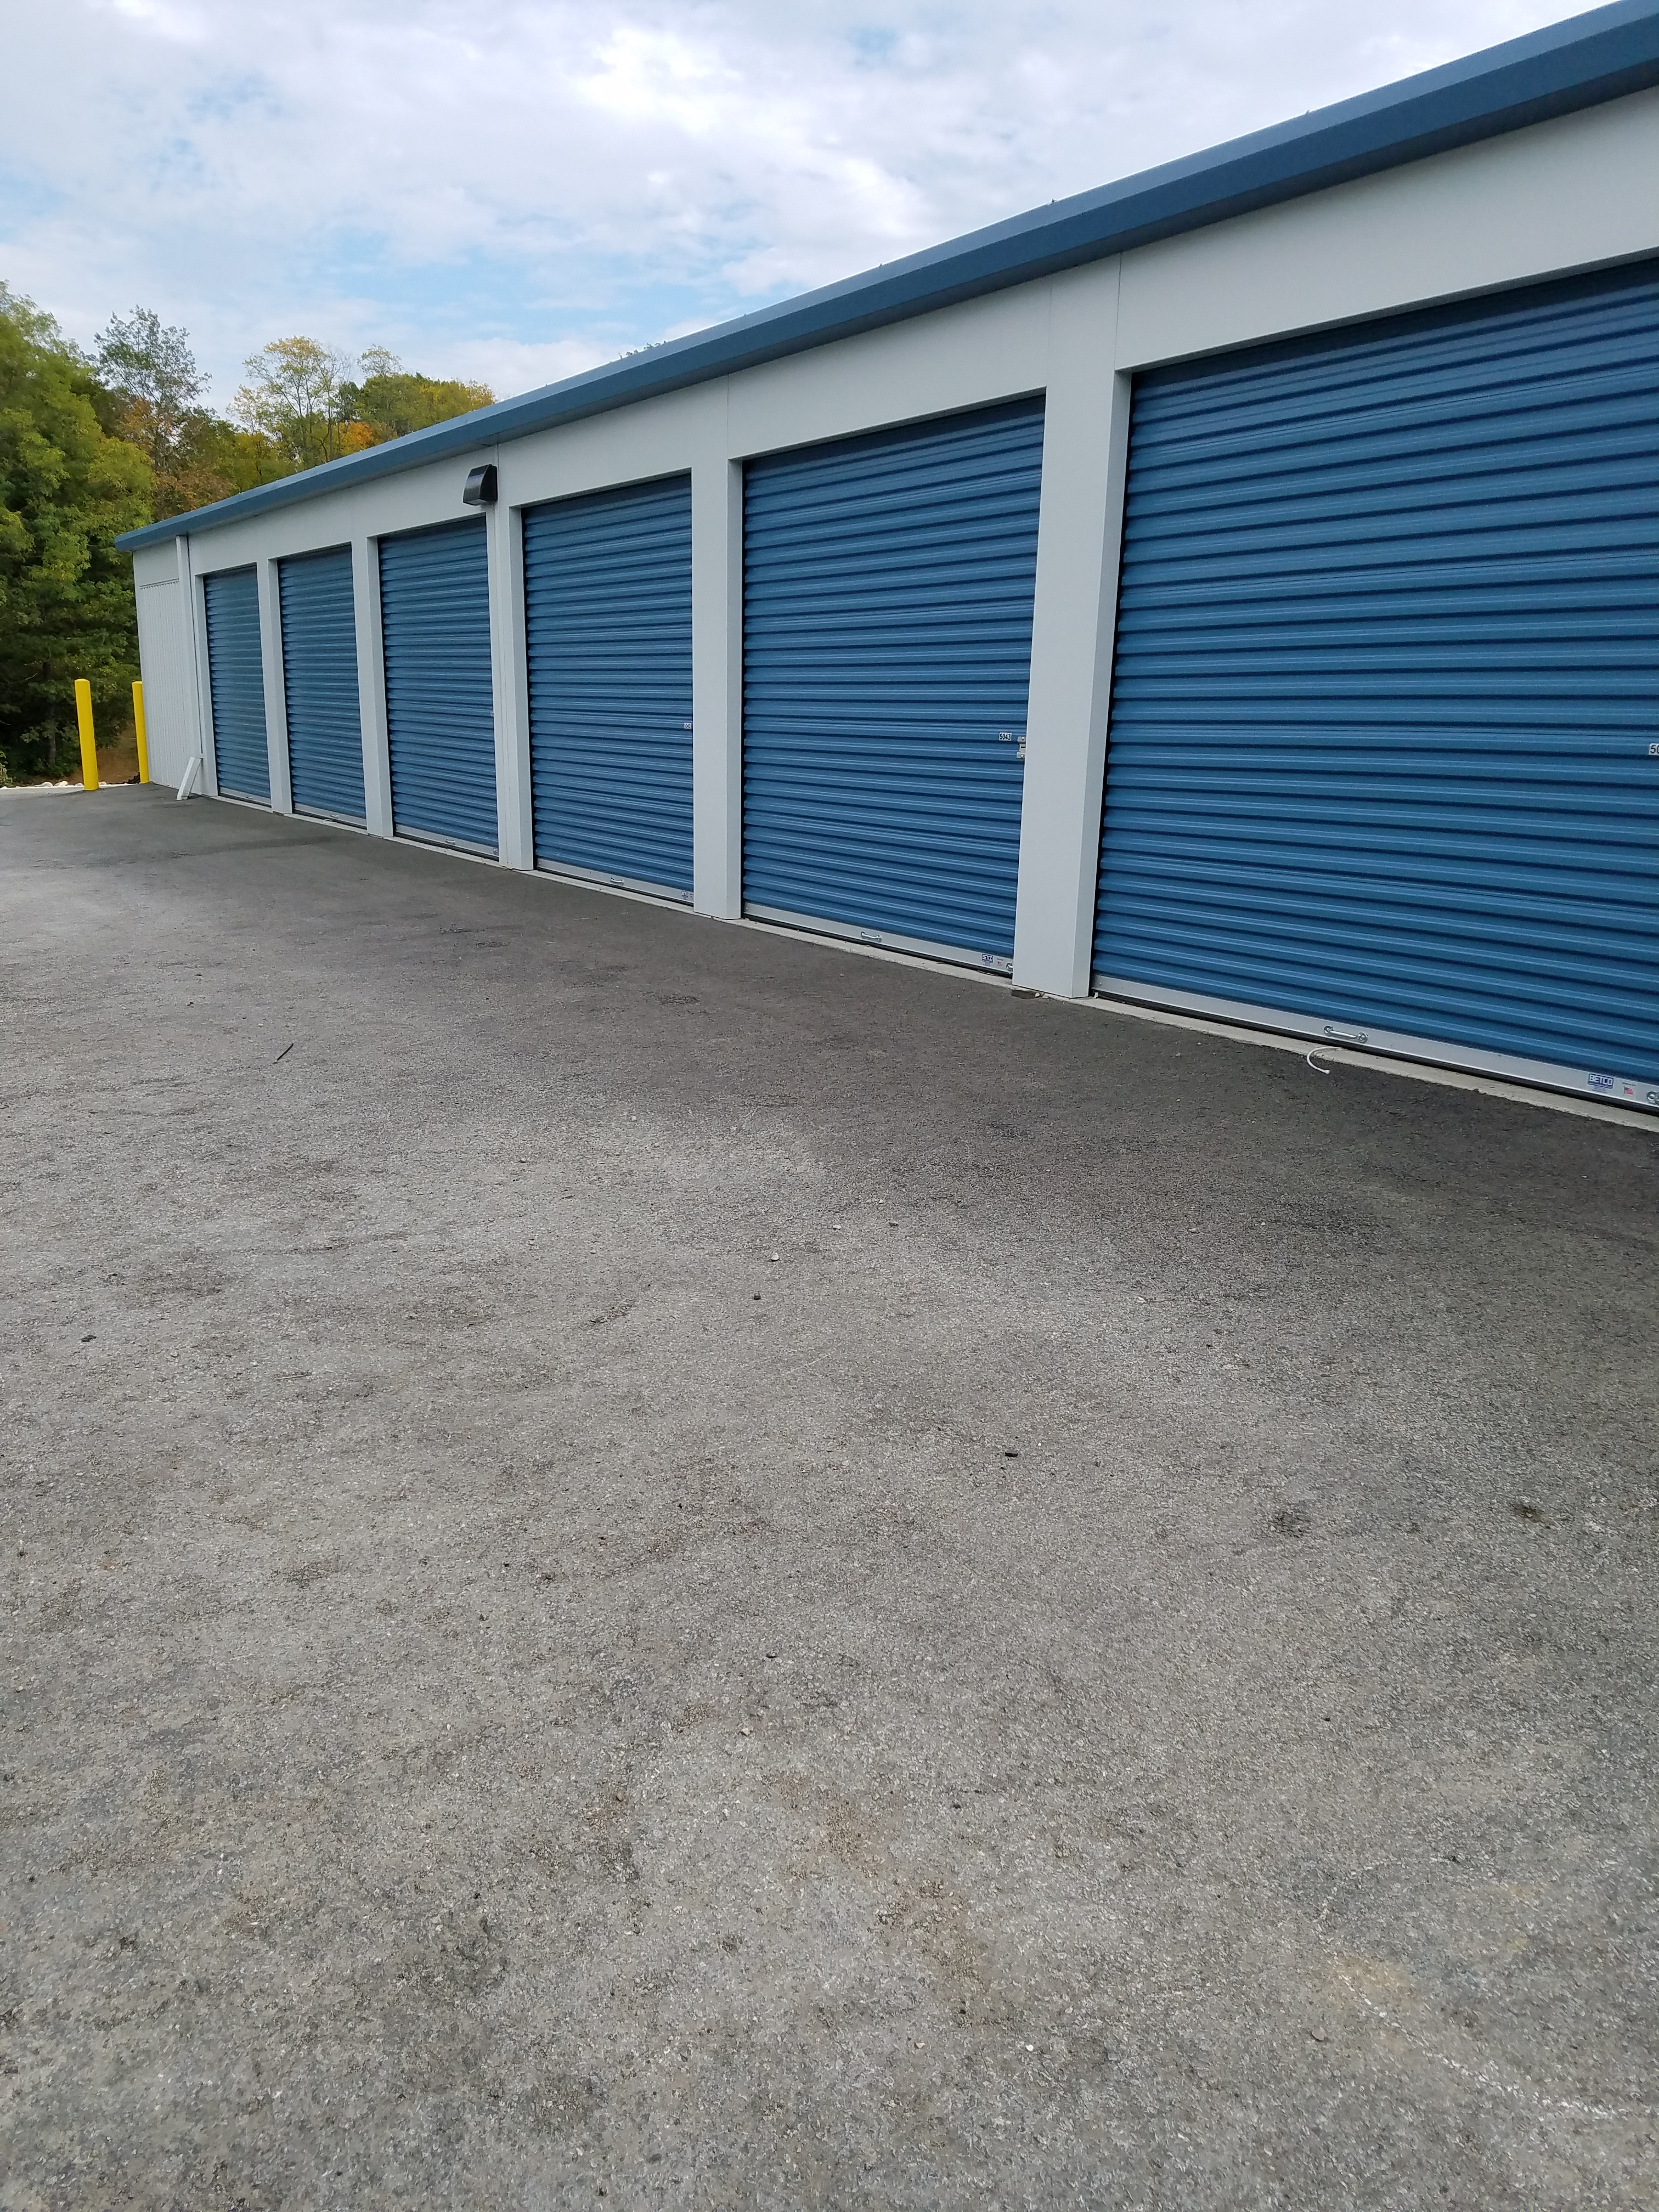 Drive up access units